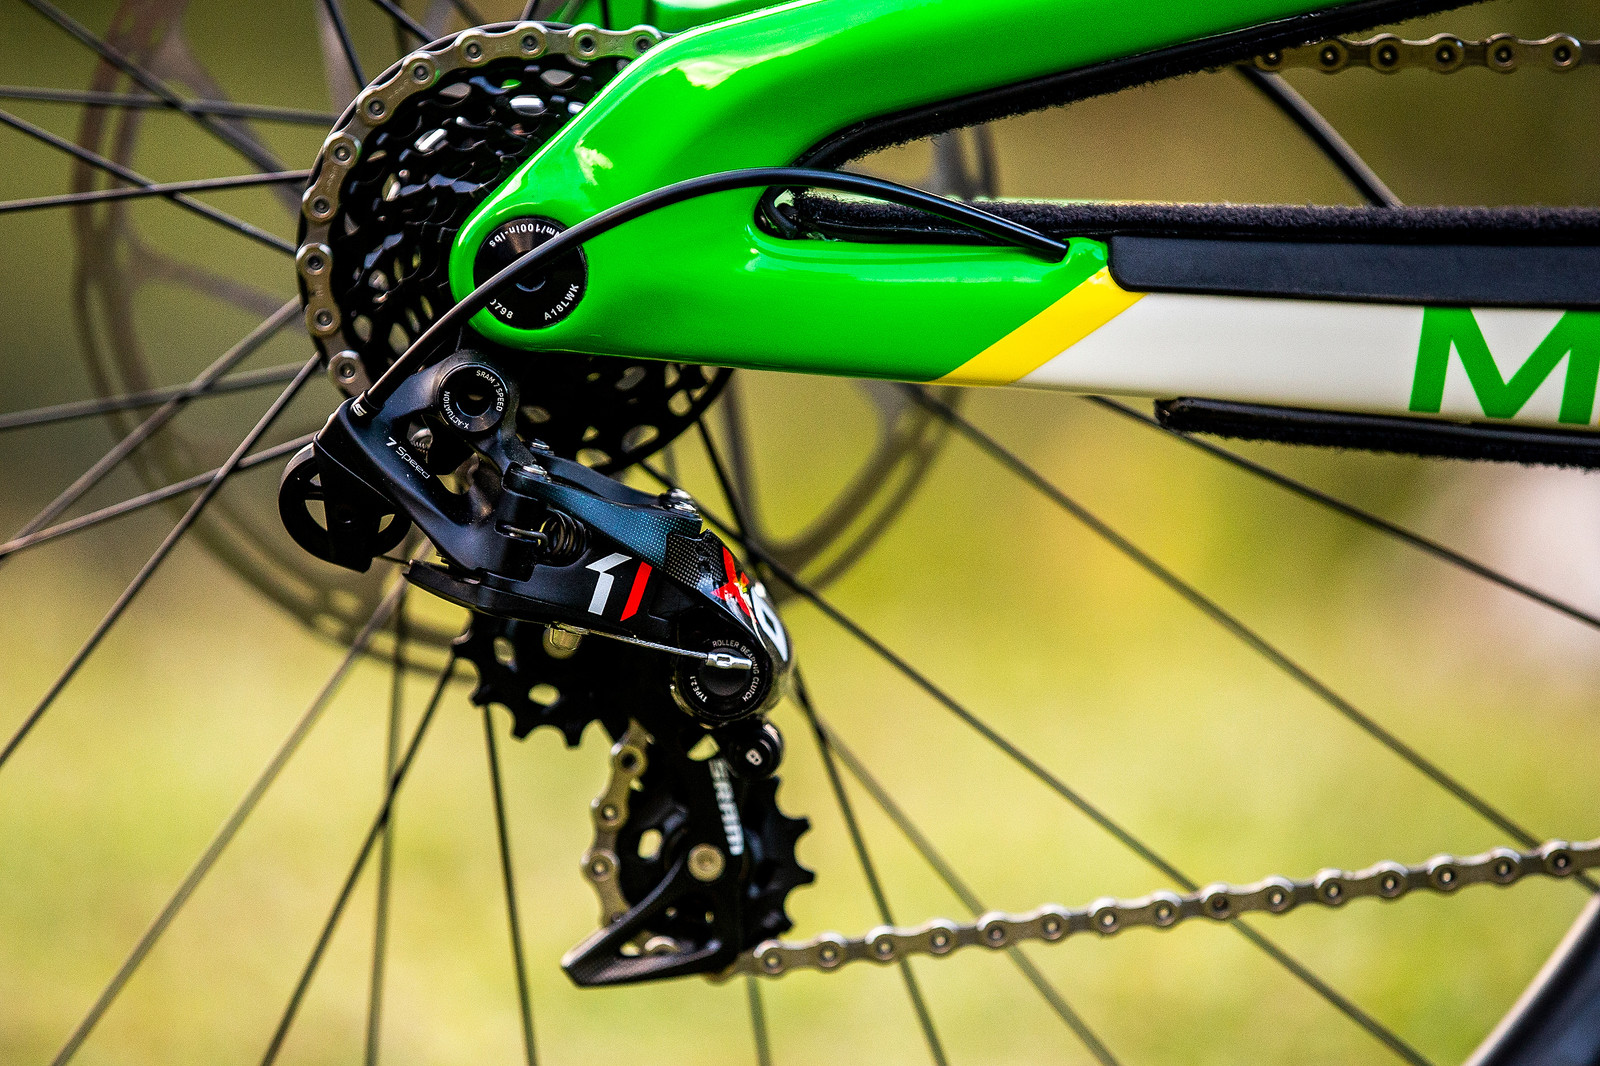 SRAM Shifting - WORLD CHAMPS BIKE - Dean Lucas' Intense M29 - Mountain Biking Pictures - Vital MTB